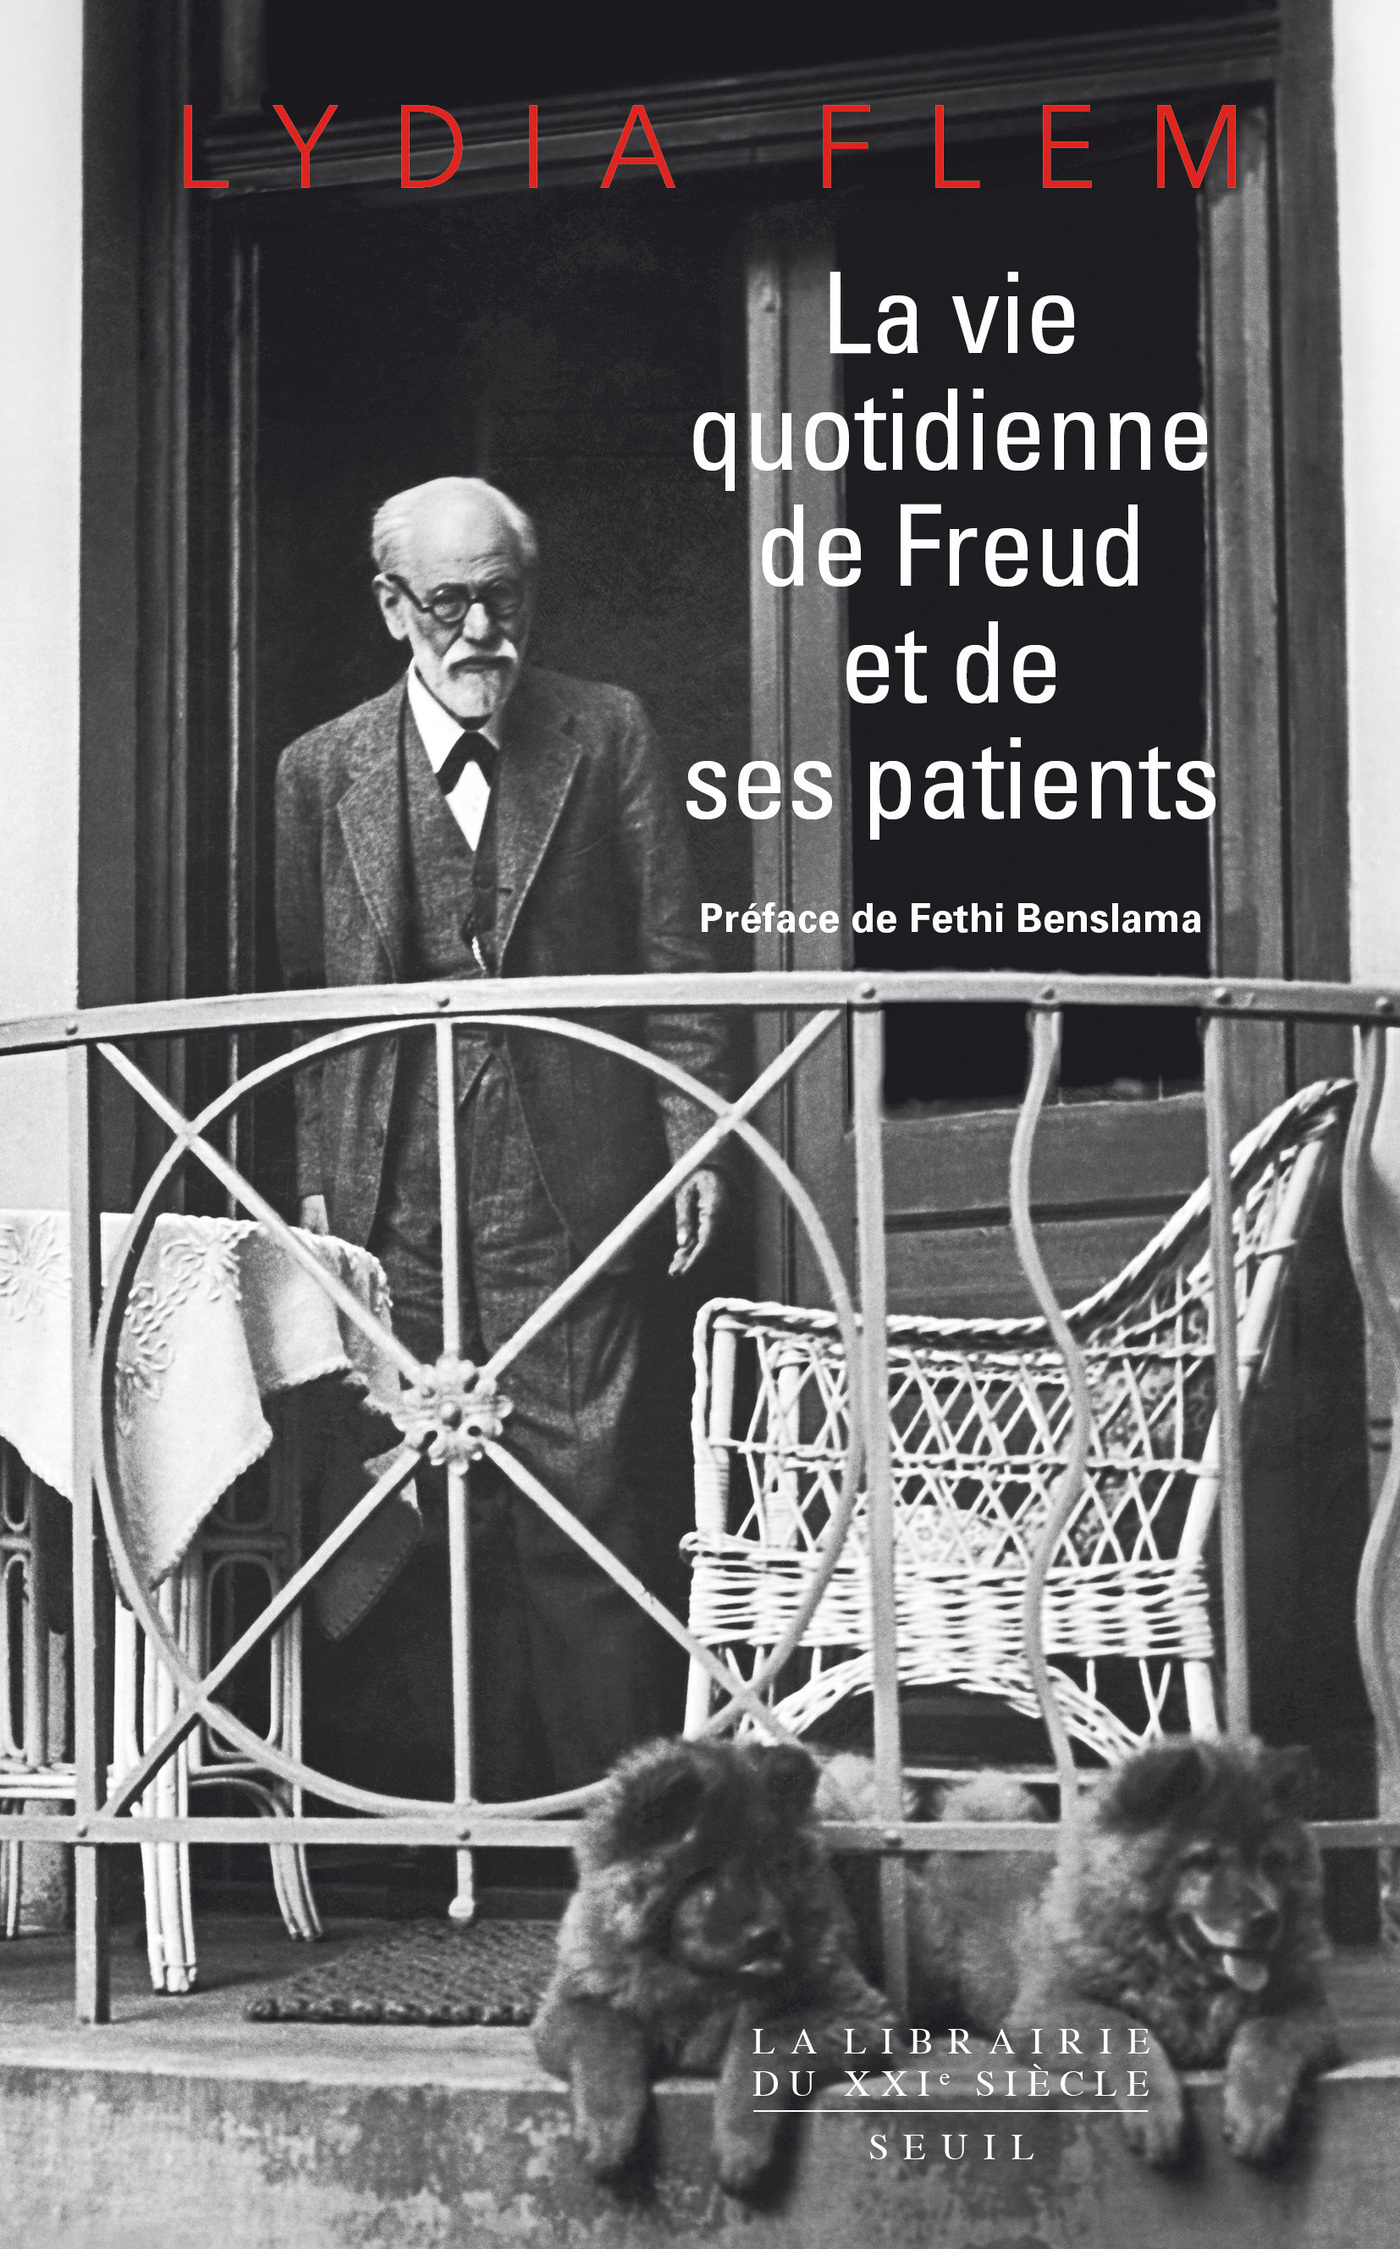 La vie quotidienne de Freud et de ses patients | Flem, Lydia